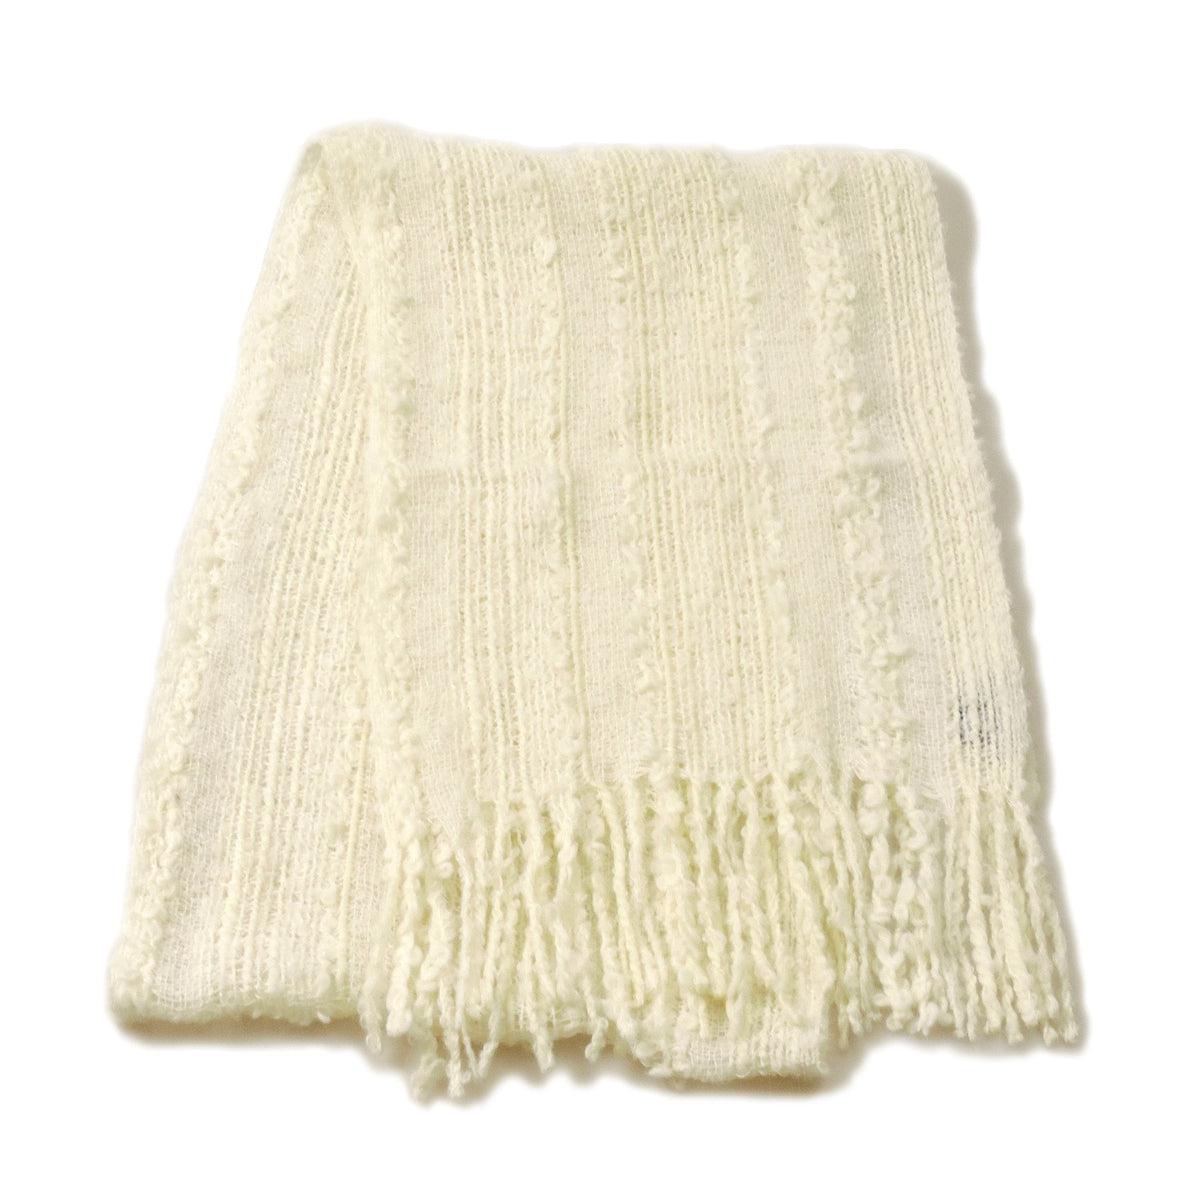 Hand-woven Baby Alpaca Fantasia Scarf - White Cloud - Qinti - The Peruvian Shop